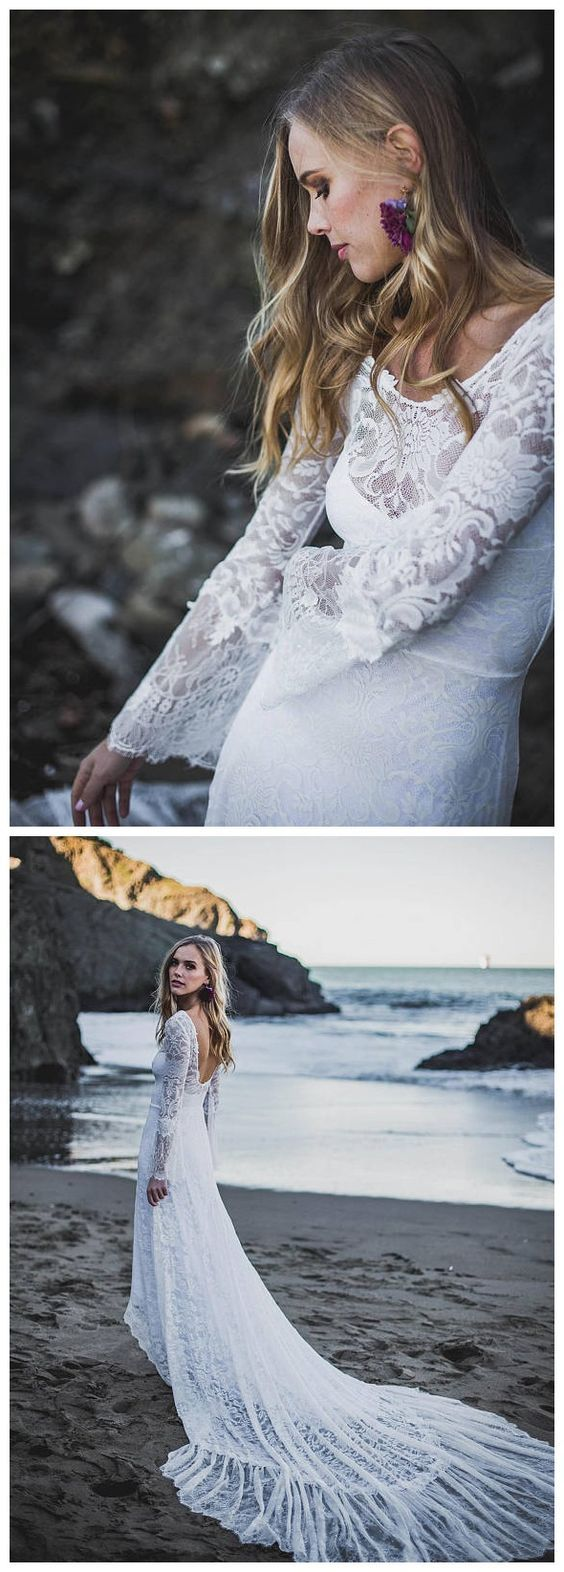 Long sleeve white rustic wedding dresses high low cute close in